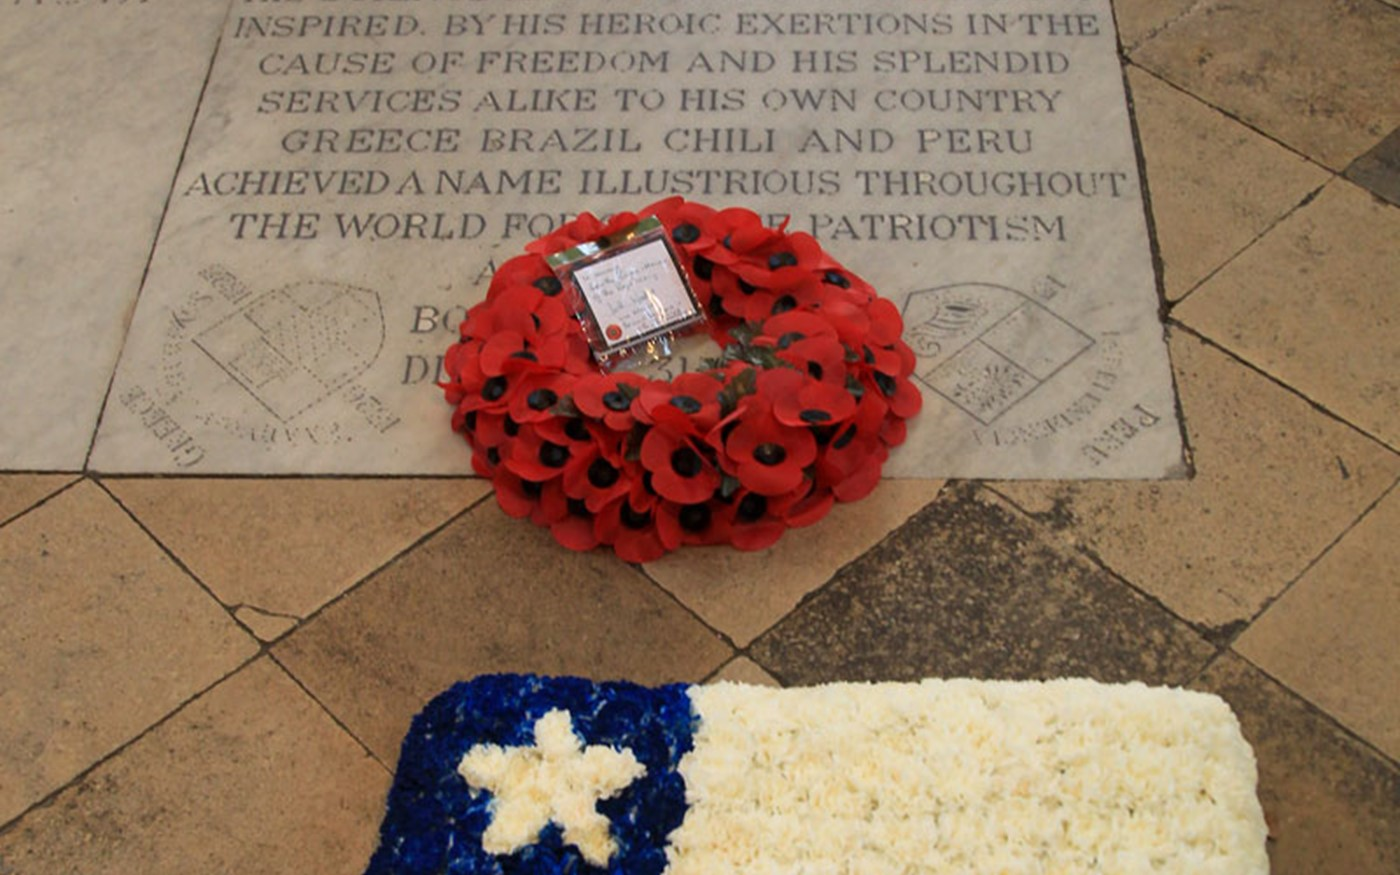 The wreaths laid on the grave of Admiral Lord Cochrane, 10th Earl of Dundonald